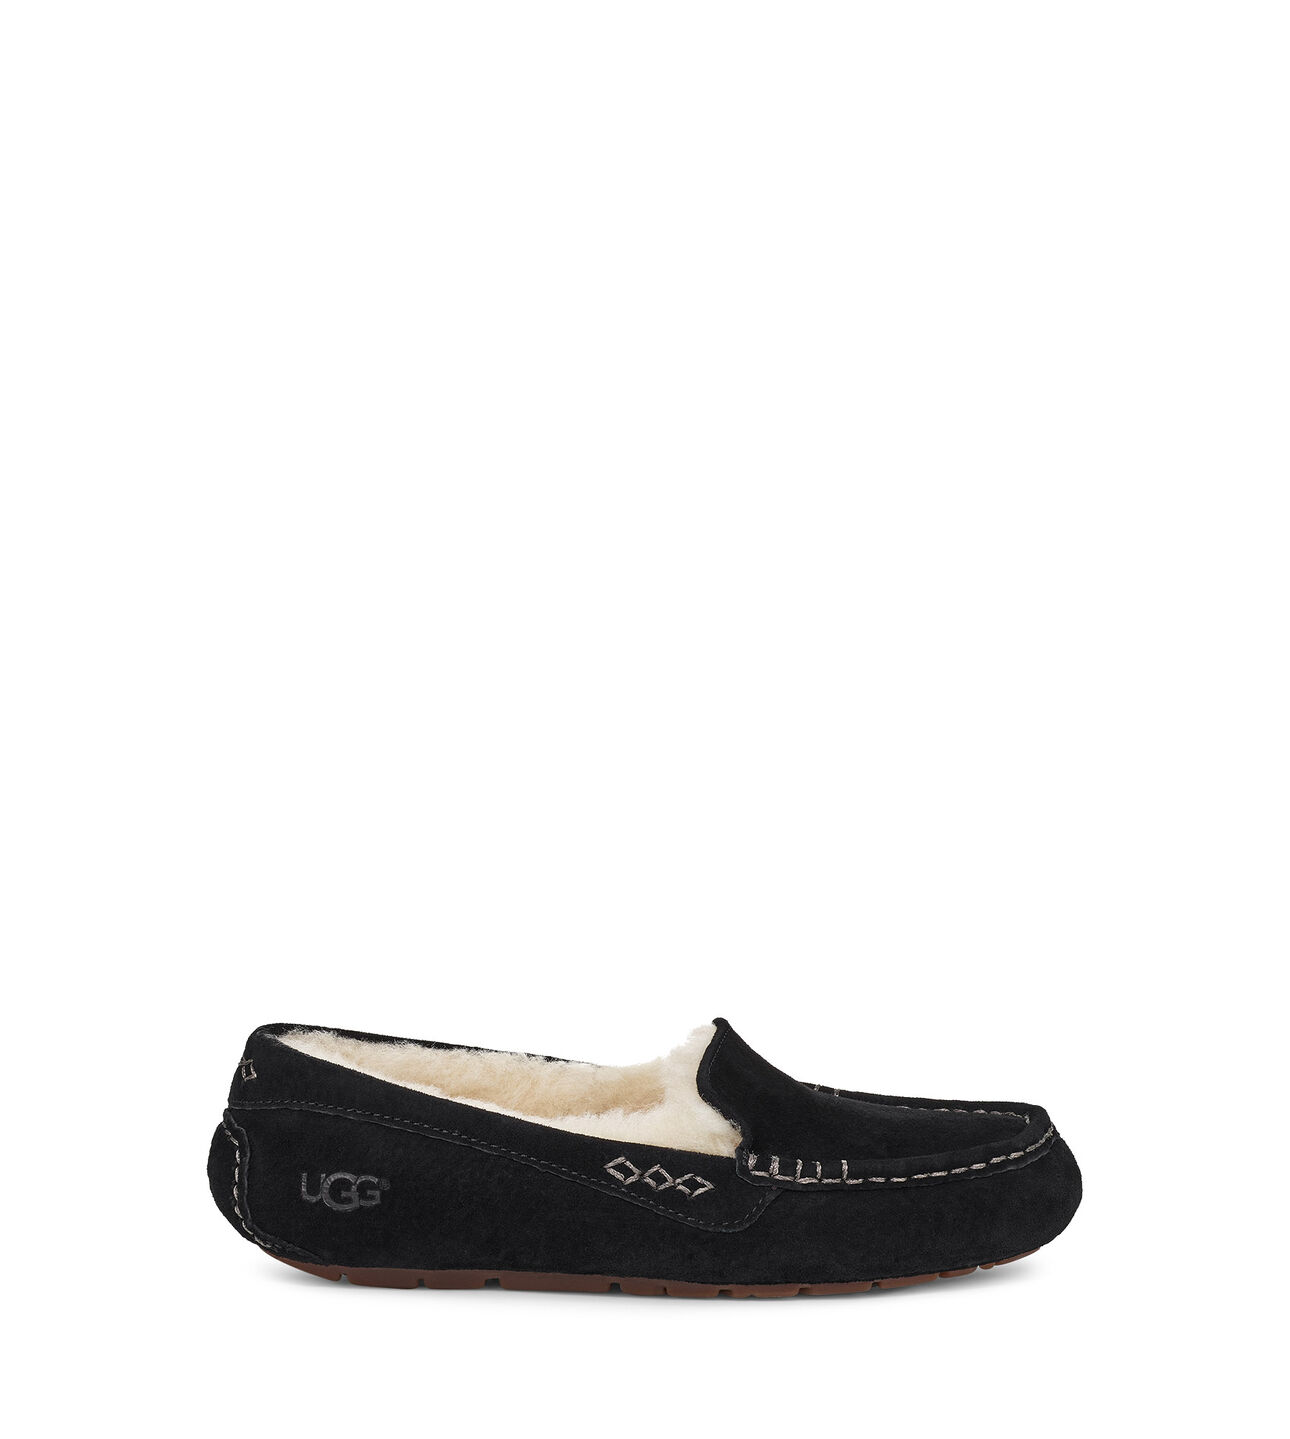 680812b0d02 Women s. Share this product. Ansley Slipper. UGG